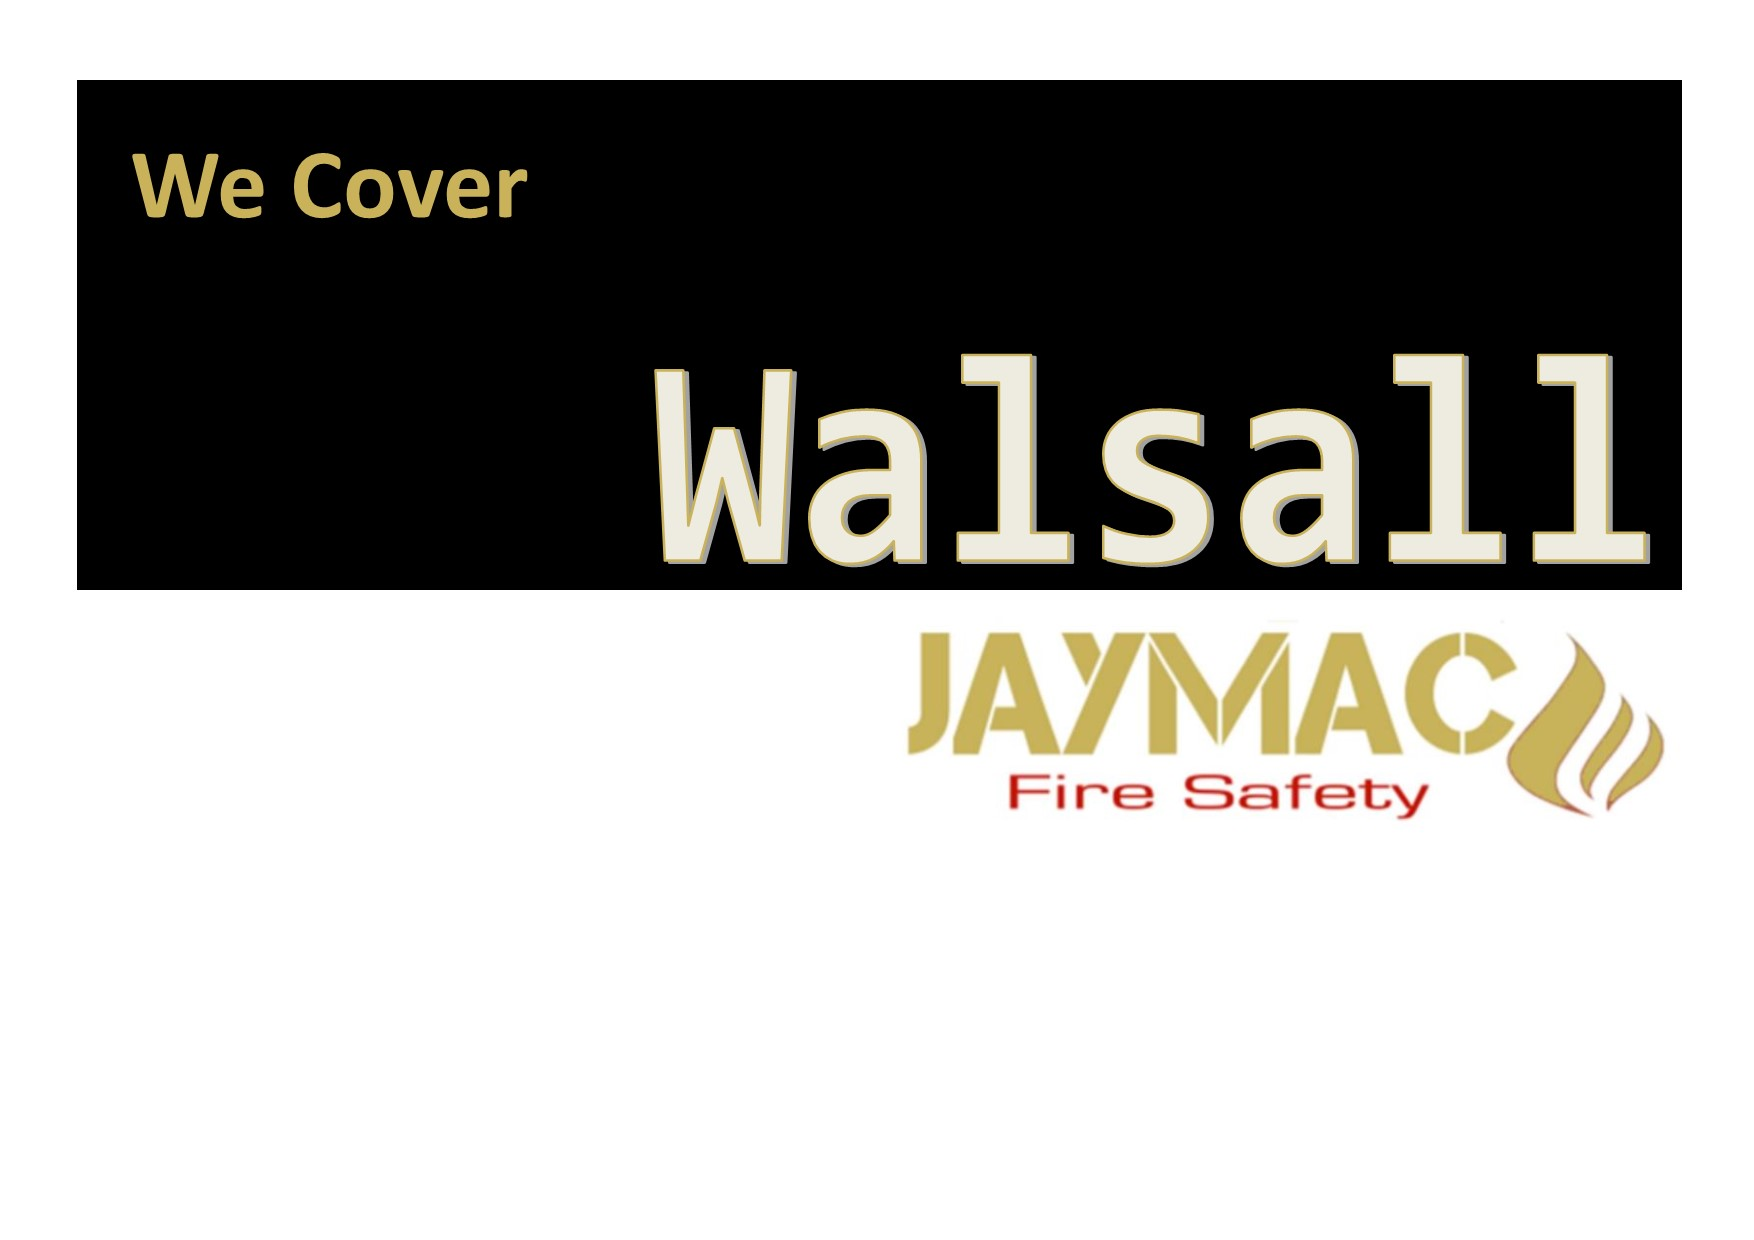 Jaymac Fire Safety.We Cover Walsall.